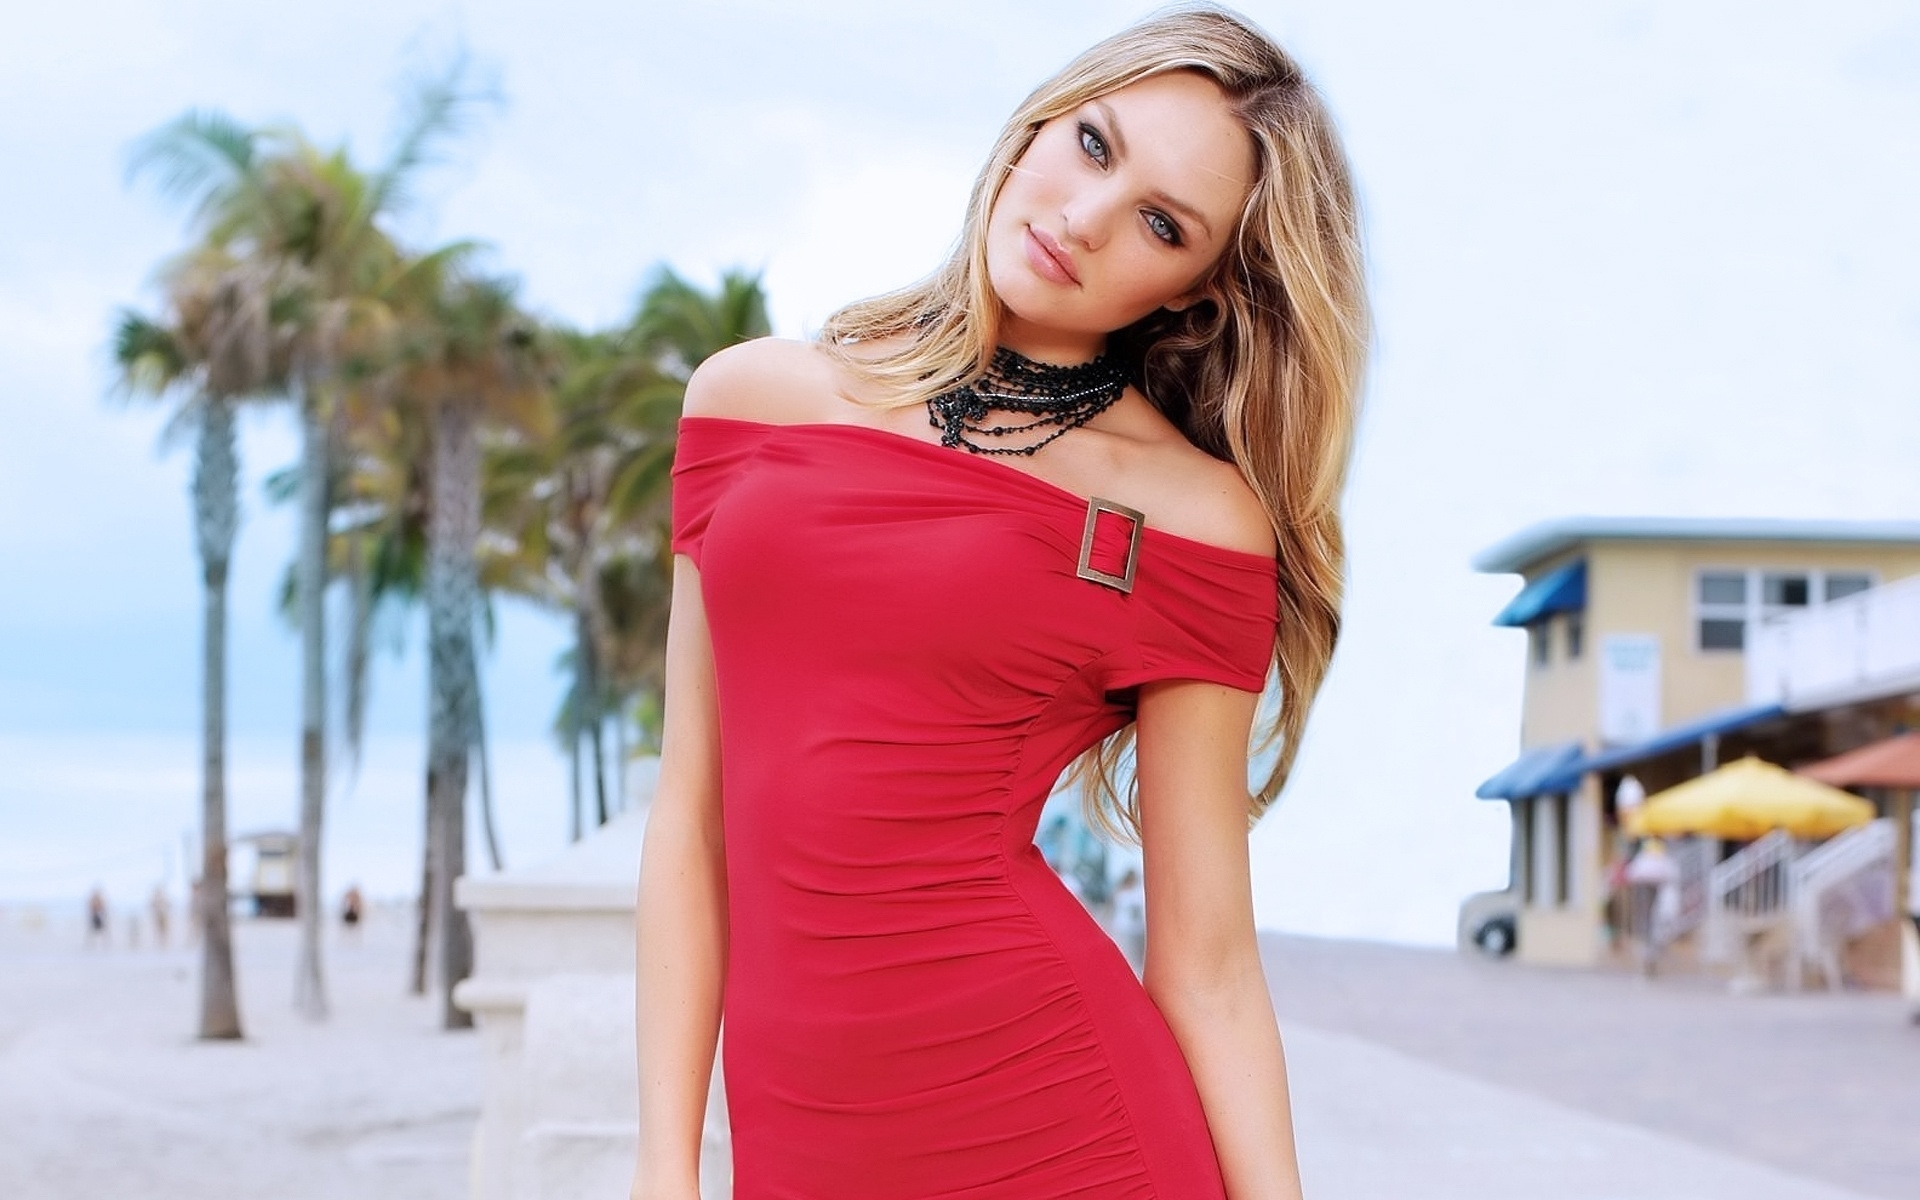 China Beautiful Girl Wallpaper Candice Swanepoel Wallpapers Pictures Images